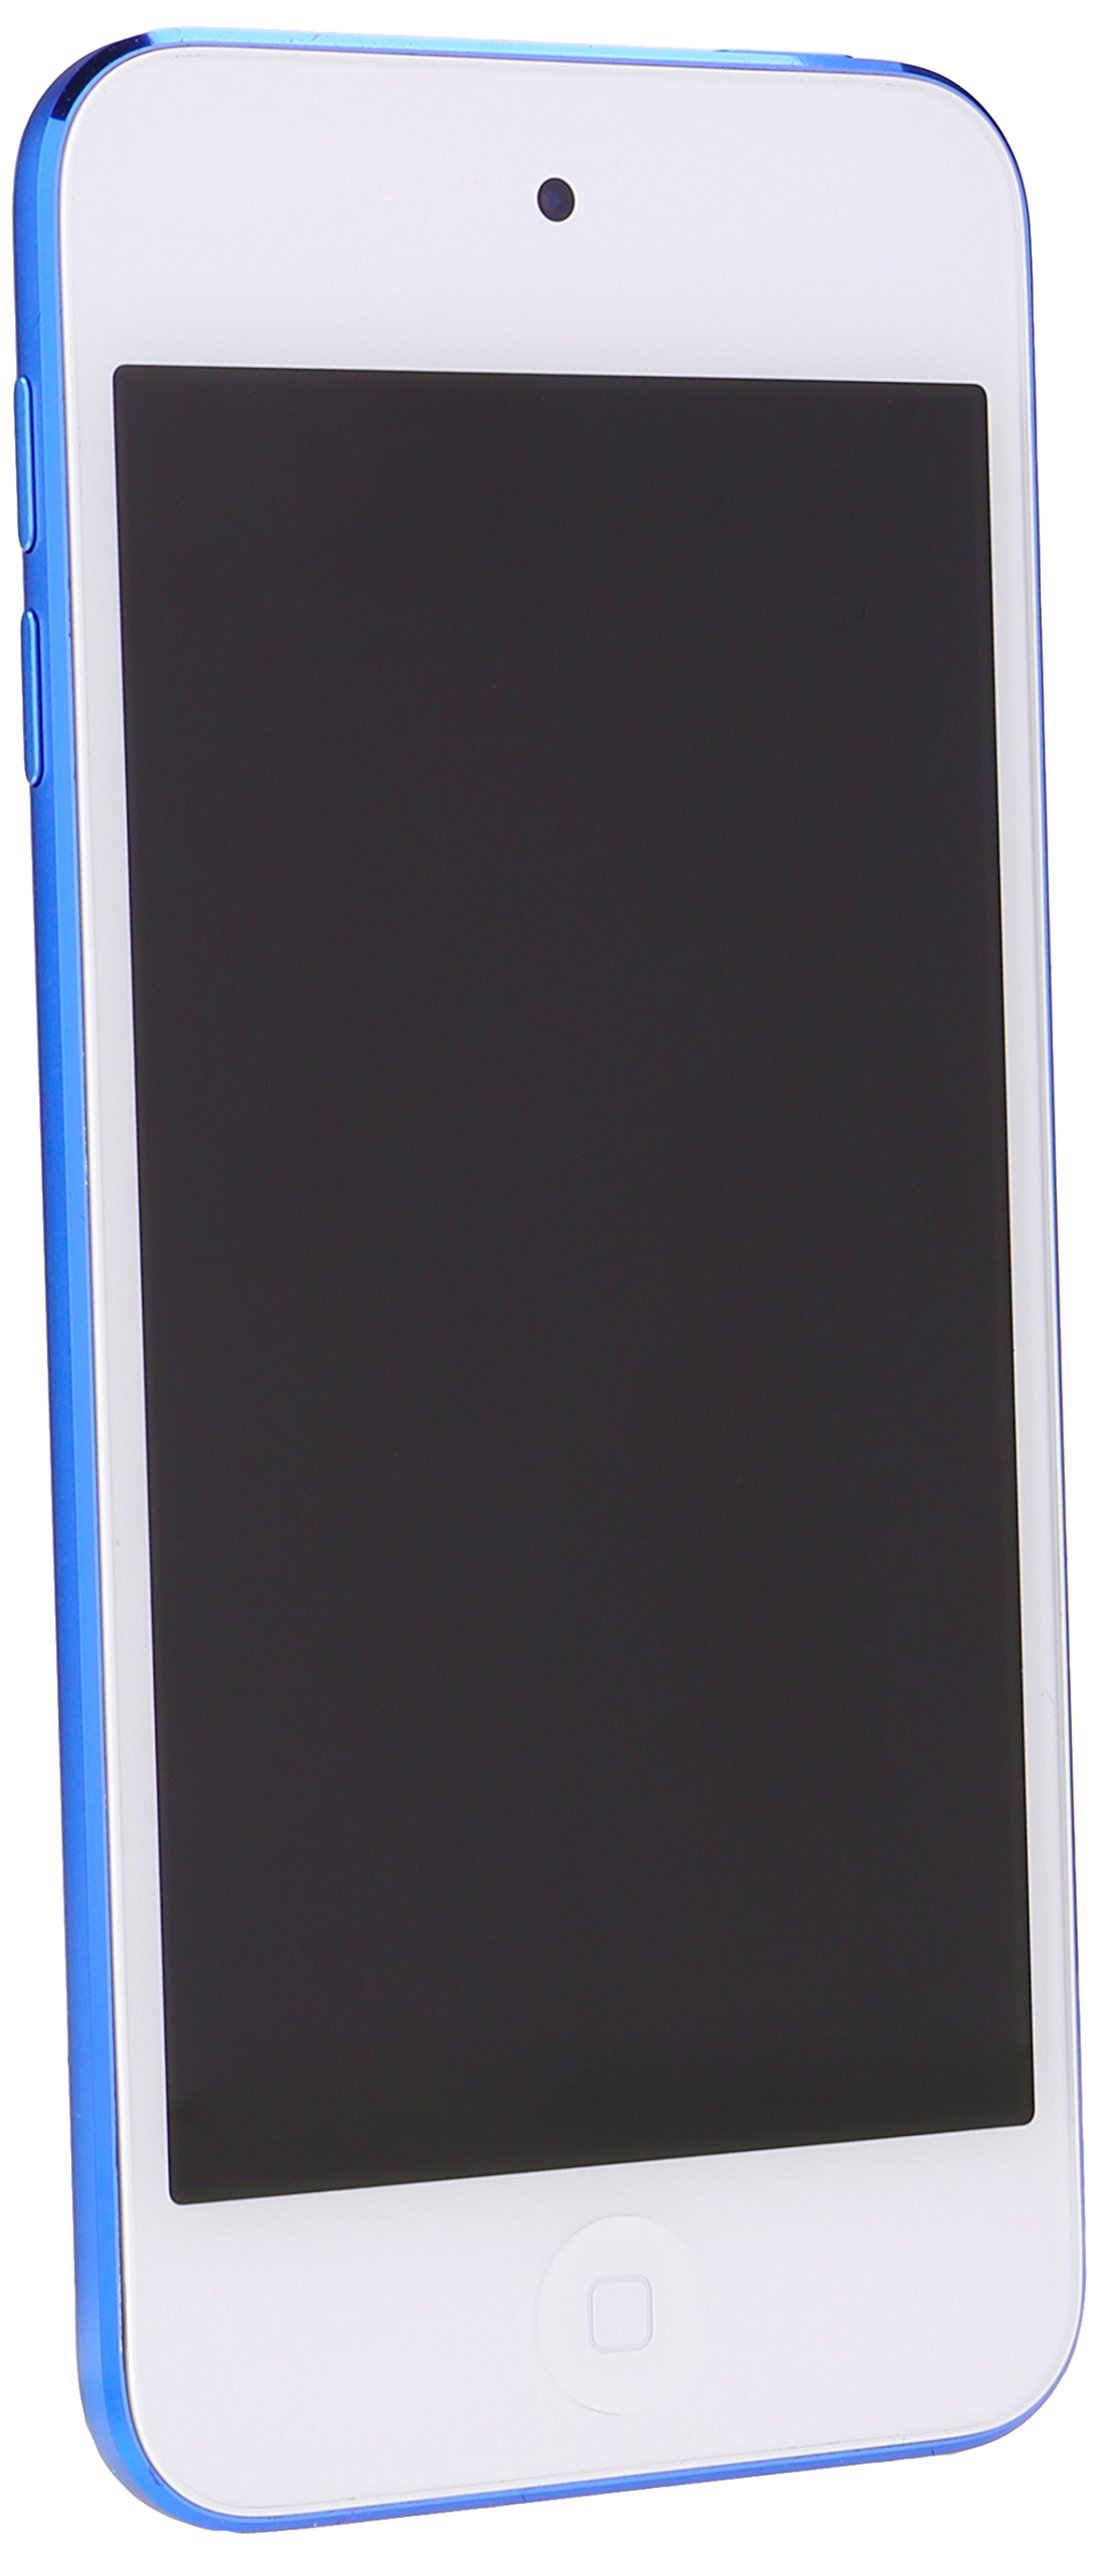 Apple iPod touch 16GB Blue (6th Generation) by Apple